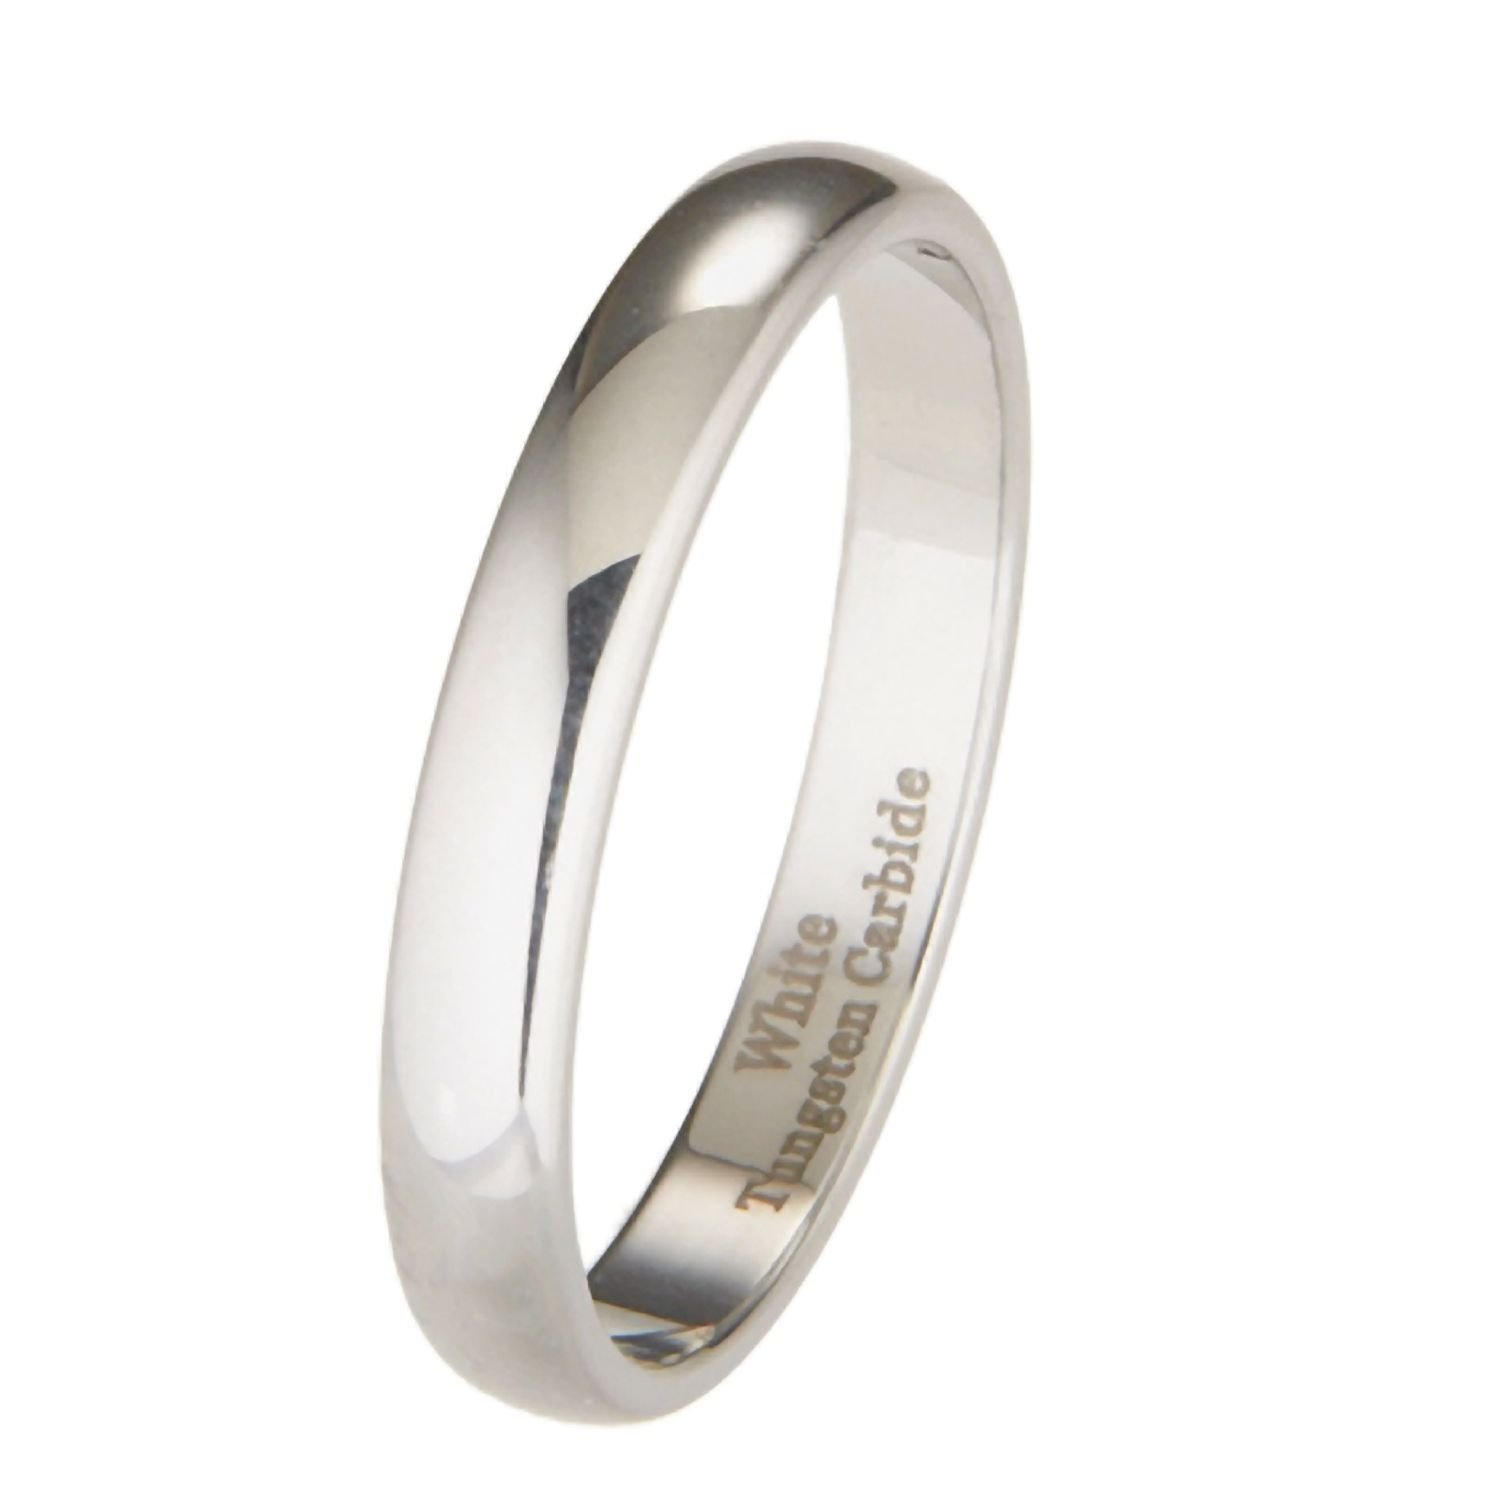 MJ Metals Jewelry Custom Engraved 3mm White Tungsten Carbide Polished Classic Wedding Ring Sz 5.5